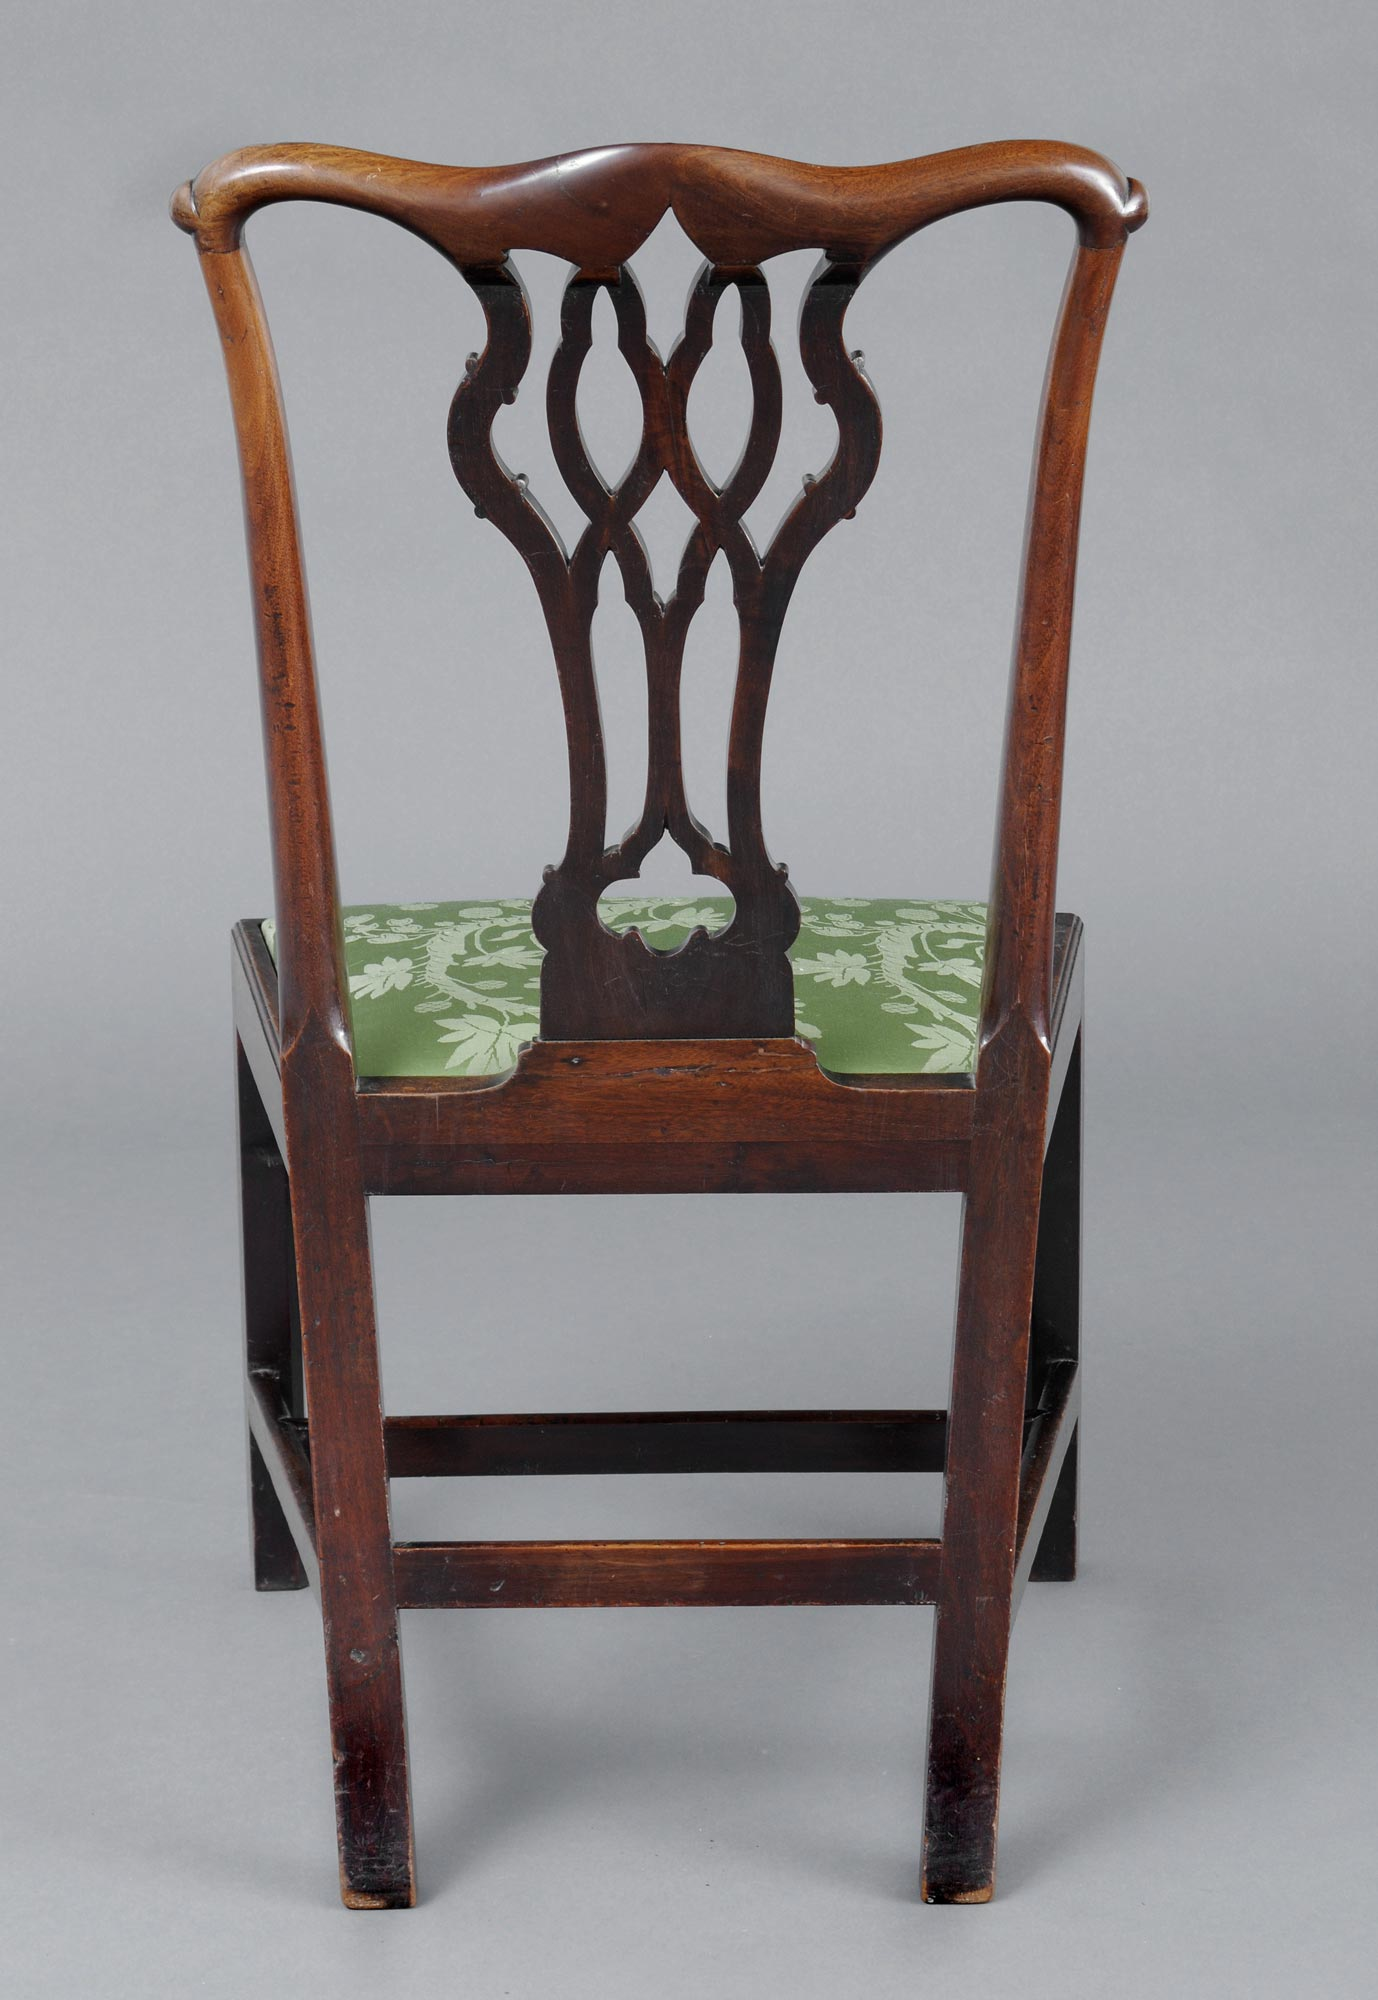 chinese chippendale chairs uk christmas plaid chair covers antique furniture